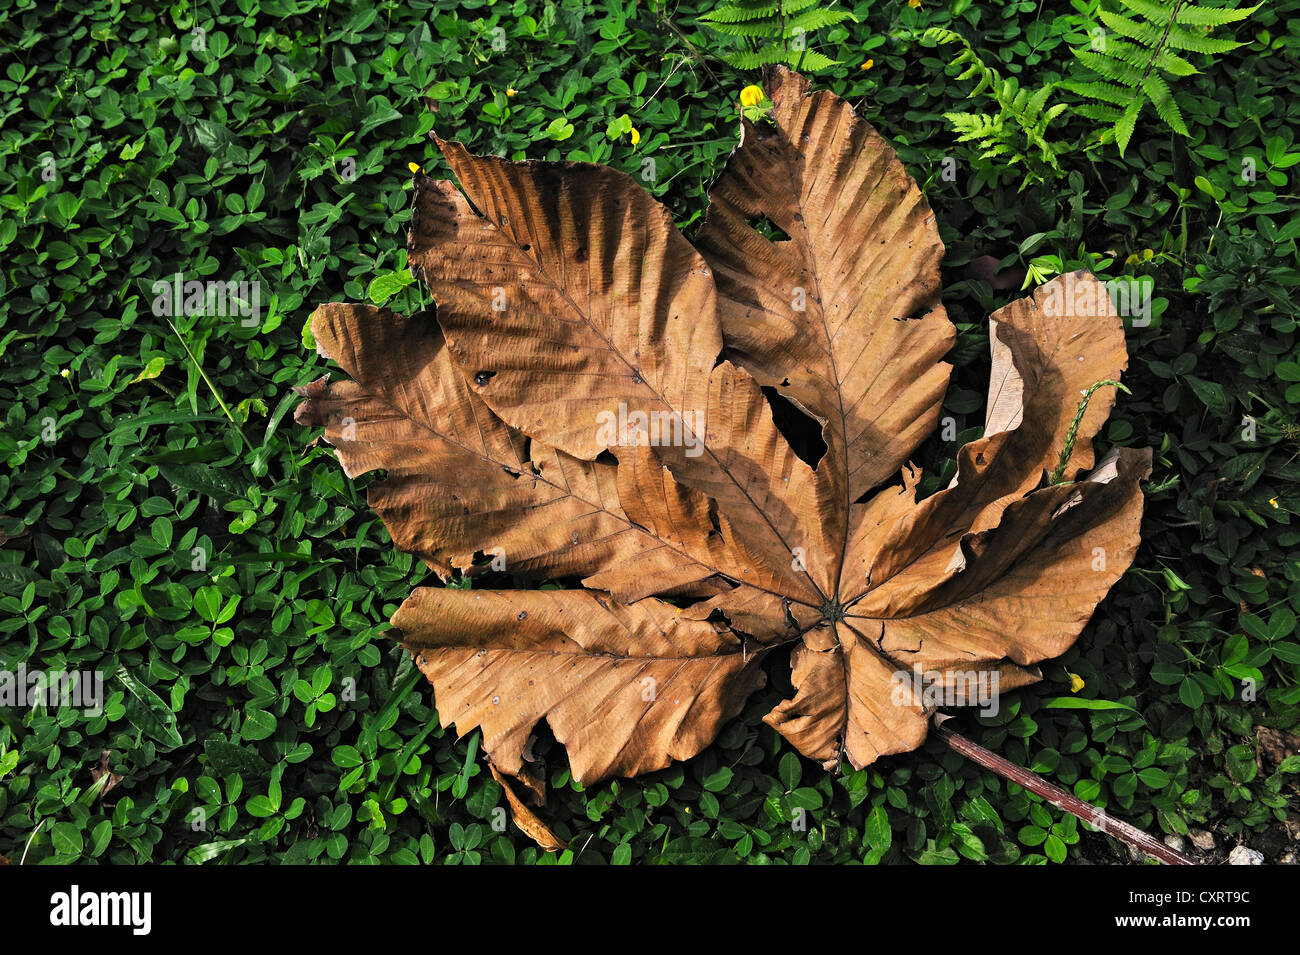 Withered leaf, Alajuela Province, Costa Rica, Central America - Stock Image